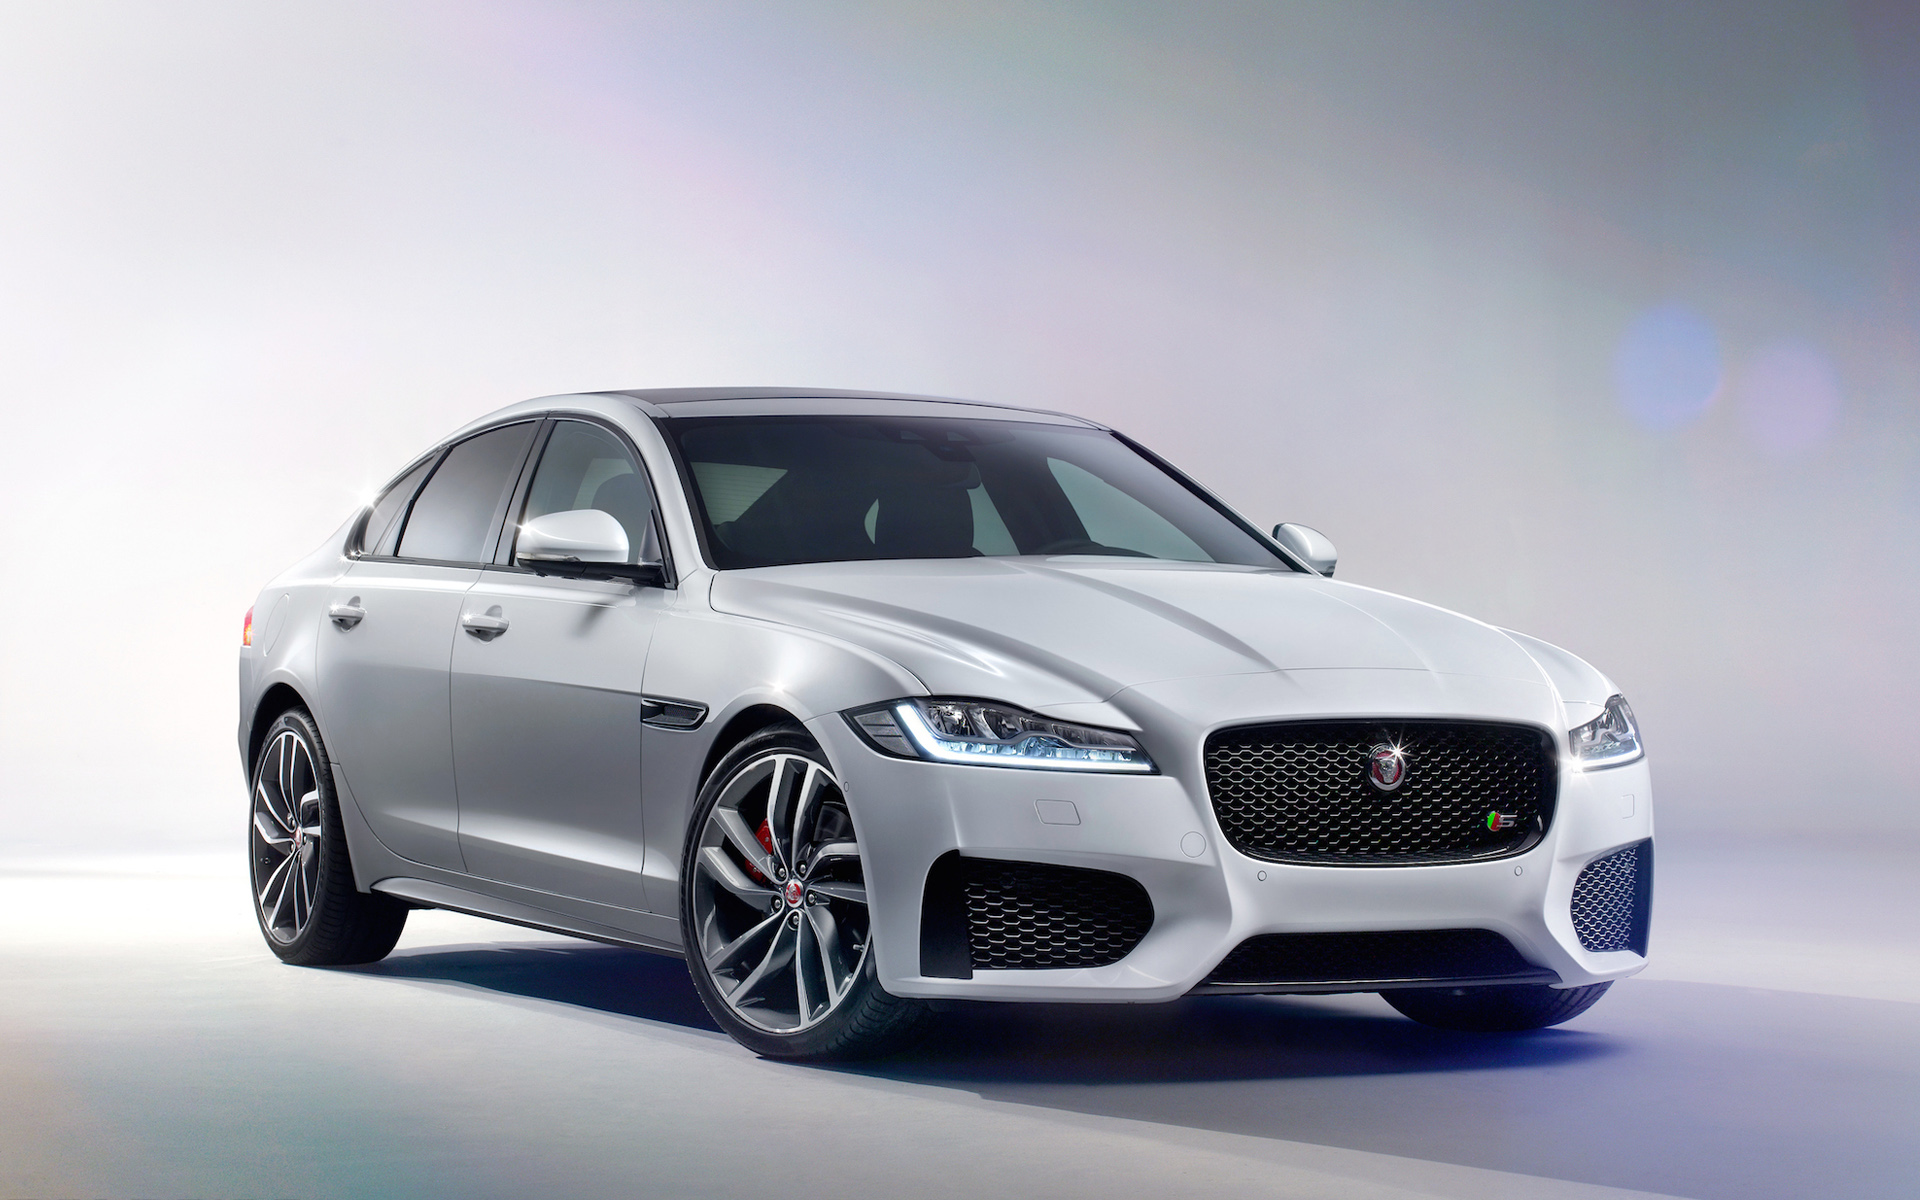 2016 jaguar xf wallpaper hd 47442